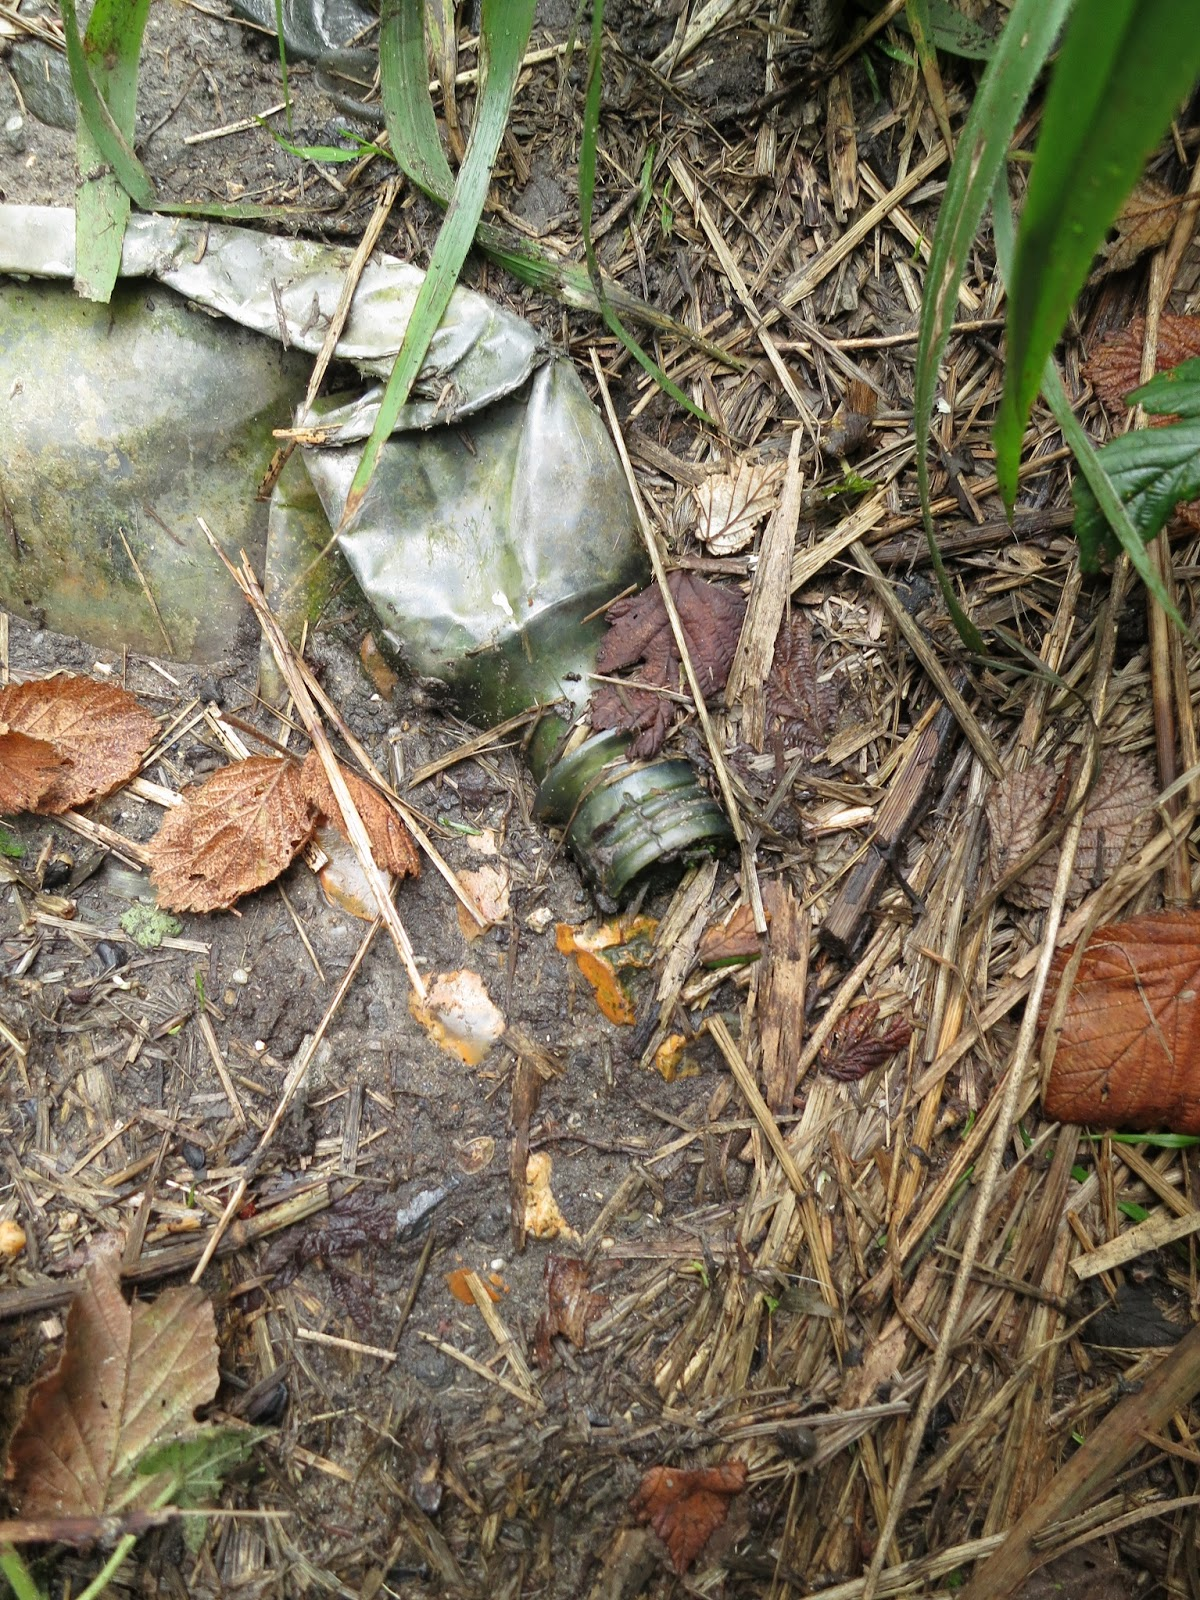 Plastic bottle squashed into muddy path - with dead and living leaves